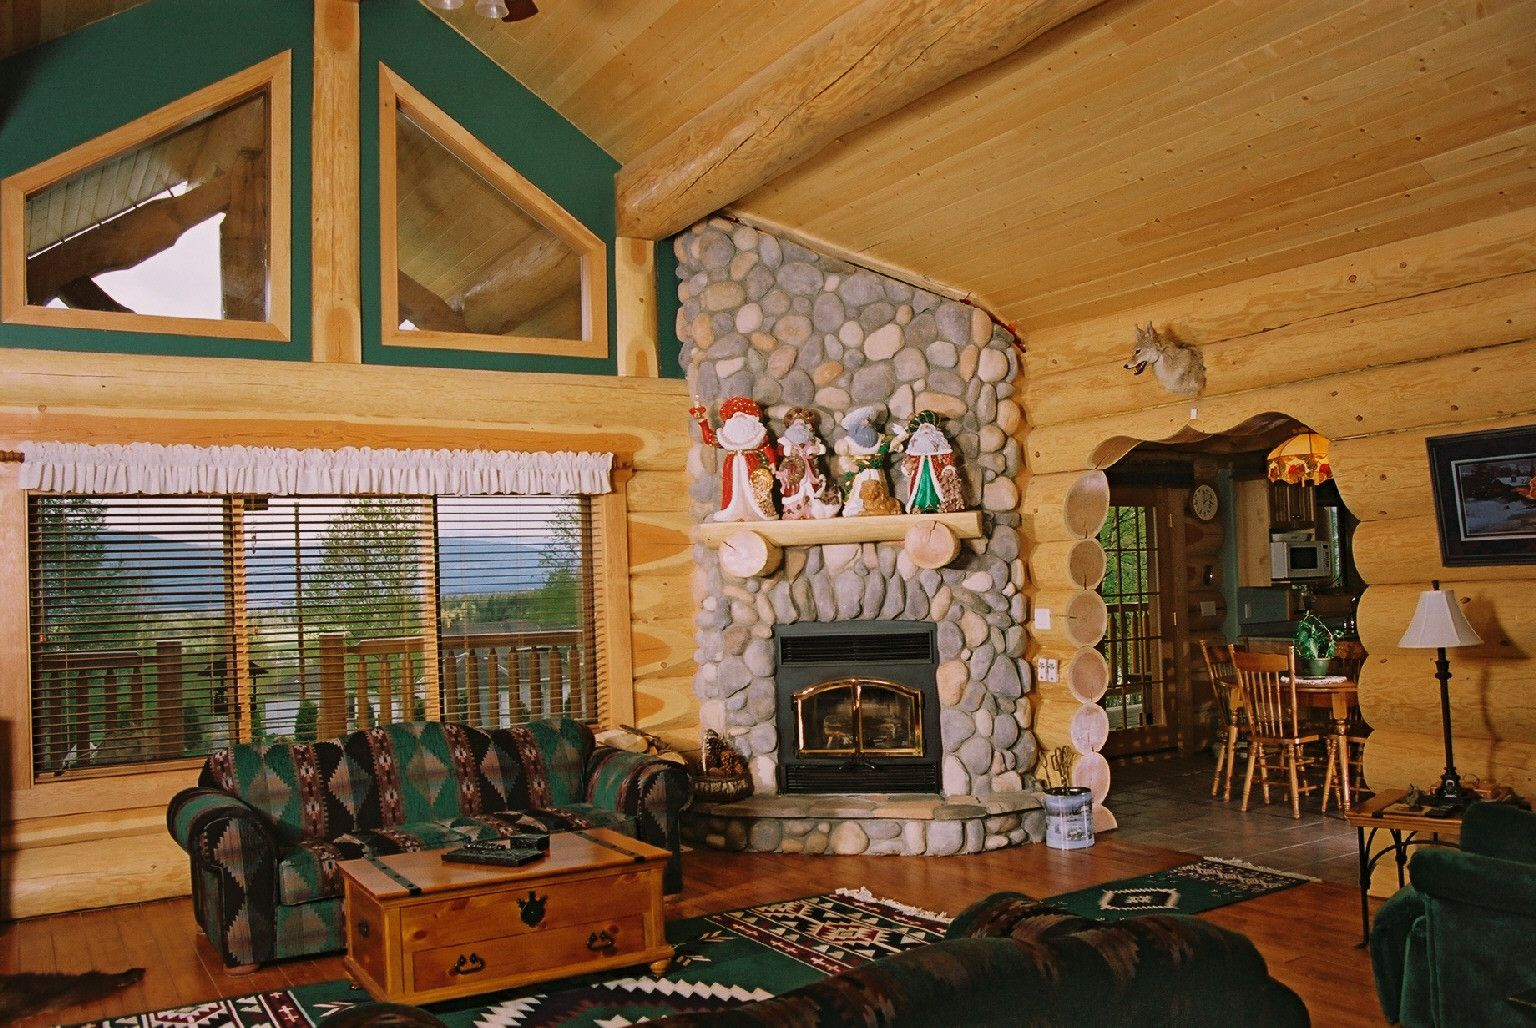 luxury log home plans for bold natural image elegant stone fireplace luxury log home plans classic design ideas equipped with stone fireplace design on - Log House Plans With Interior Photos